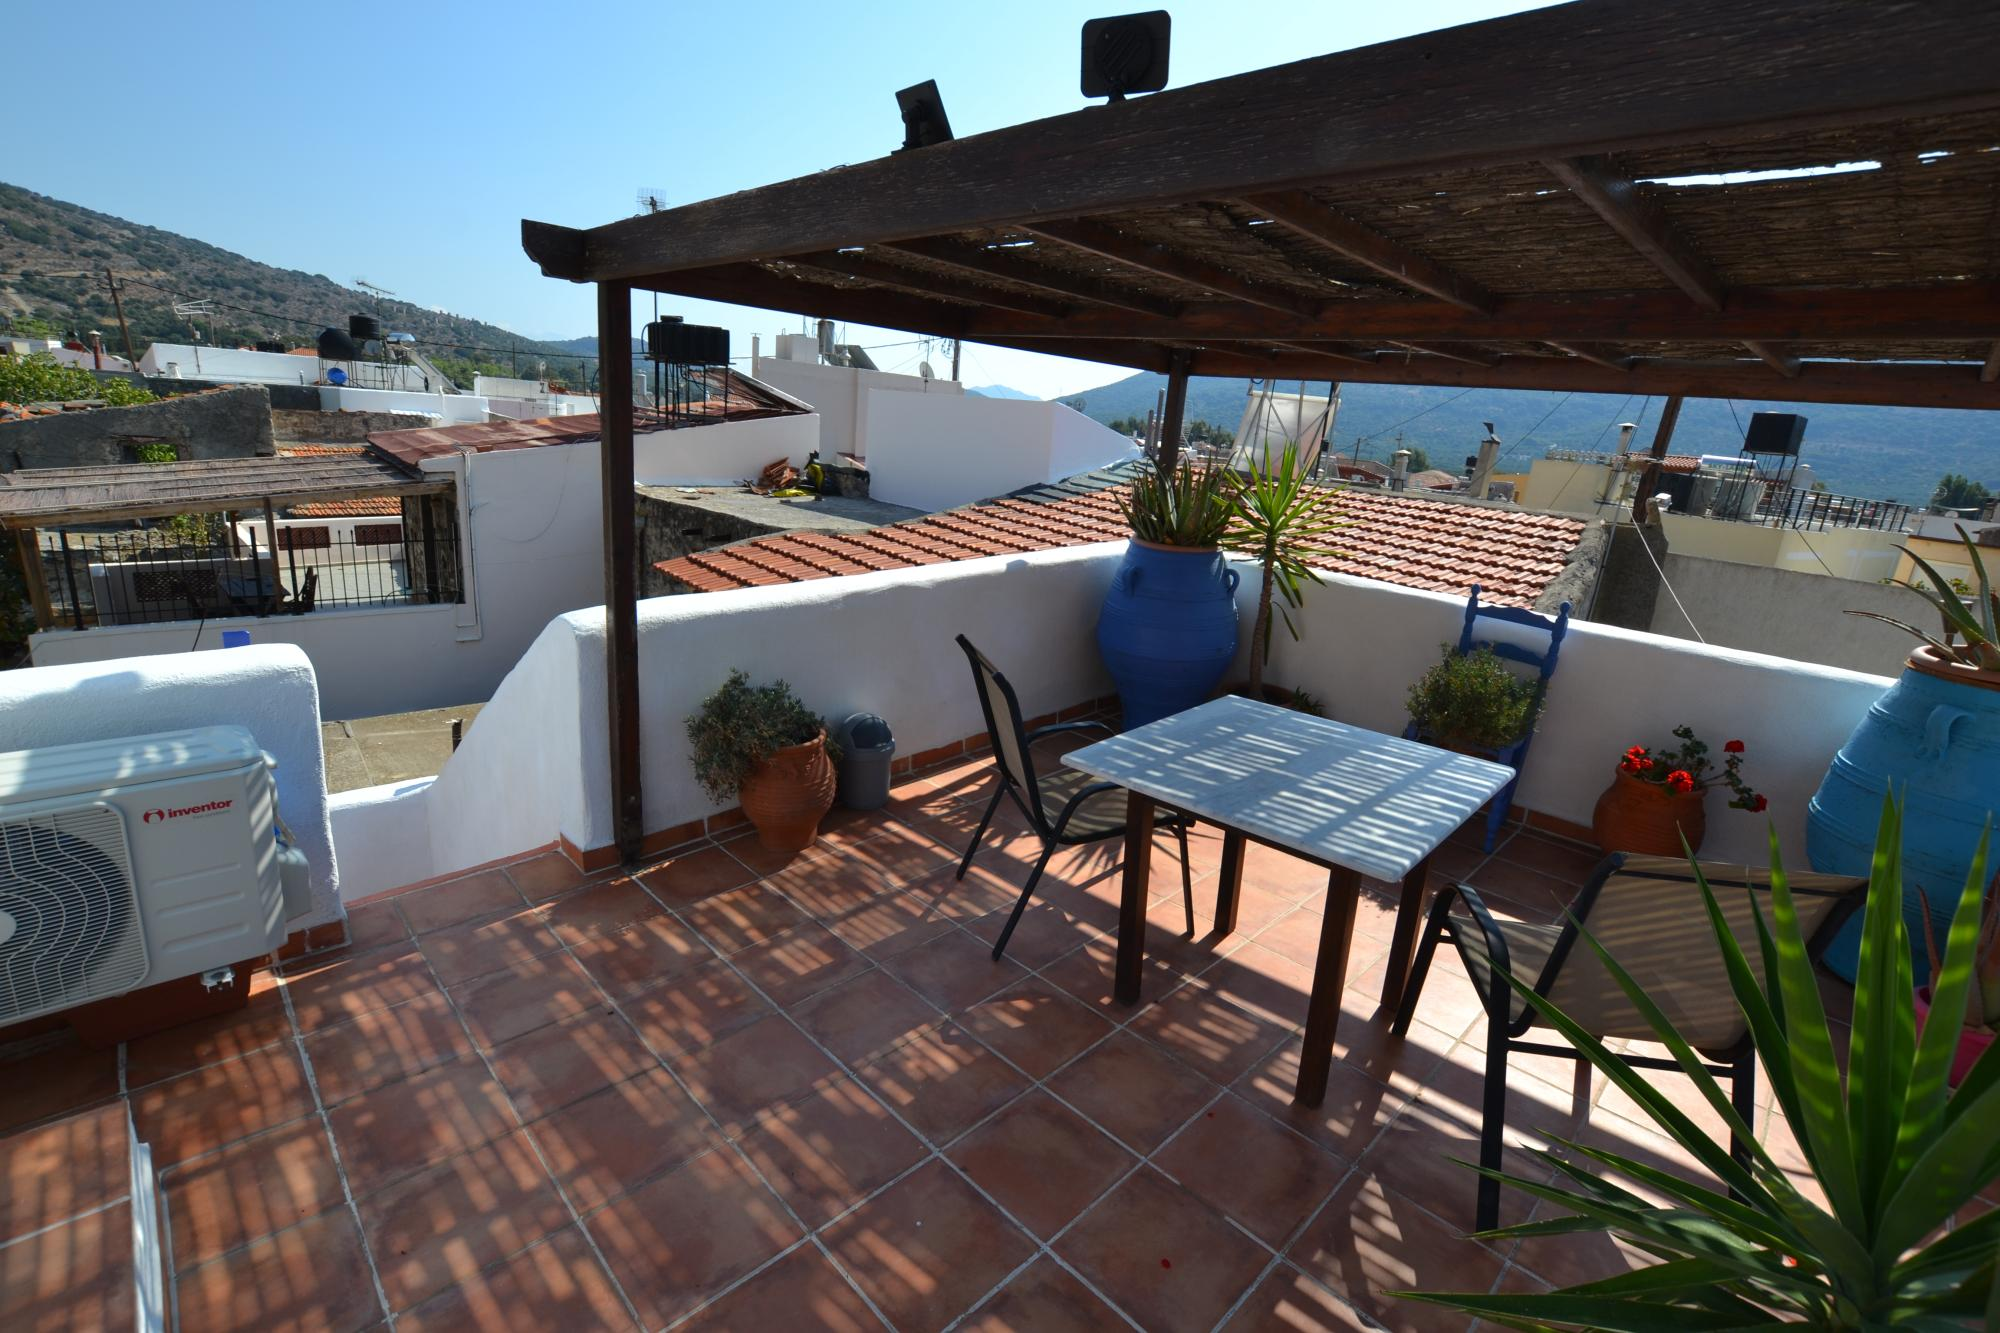 Spacious two bedroom village house with large roof terrace. Fully furnished.